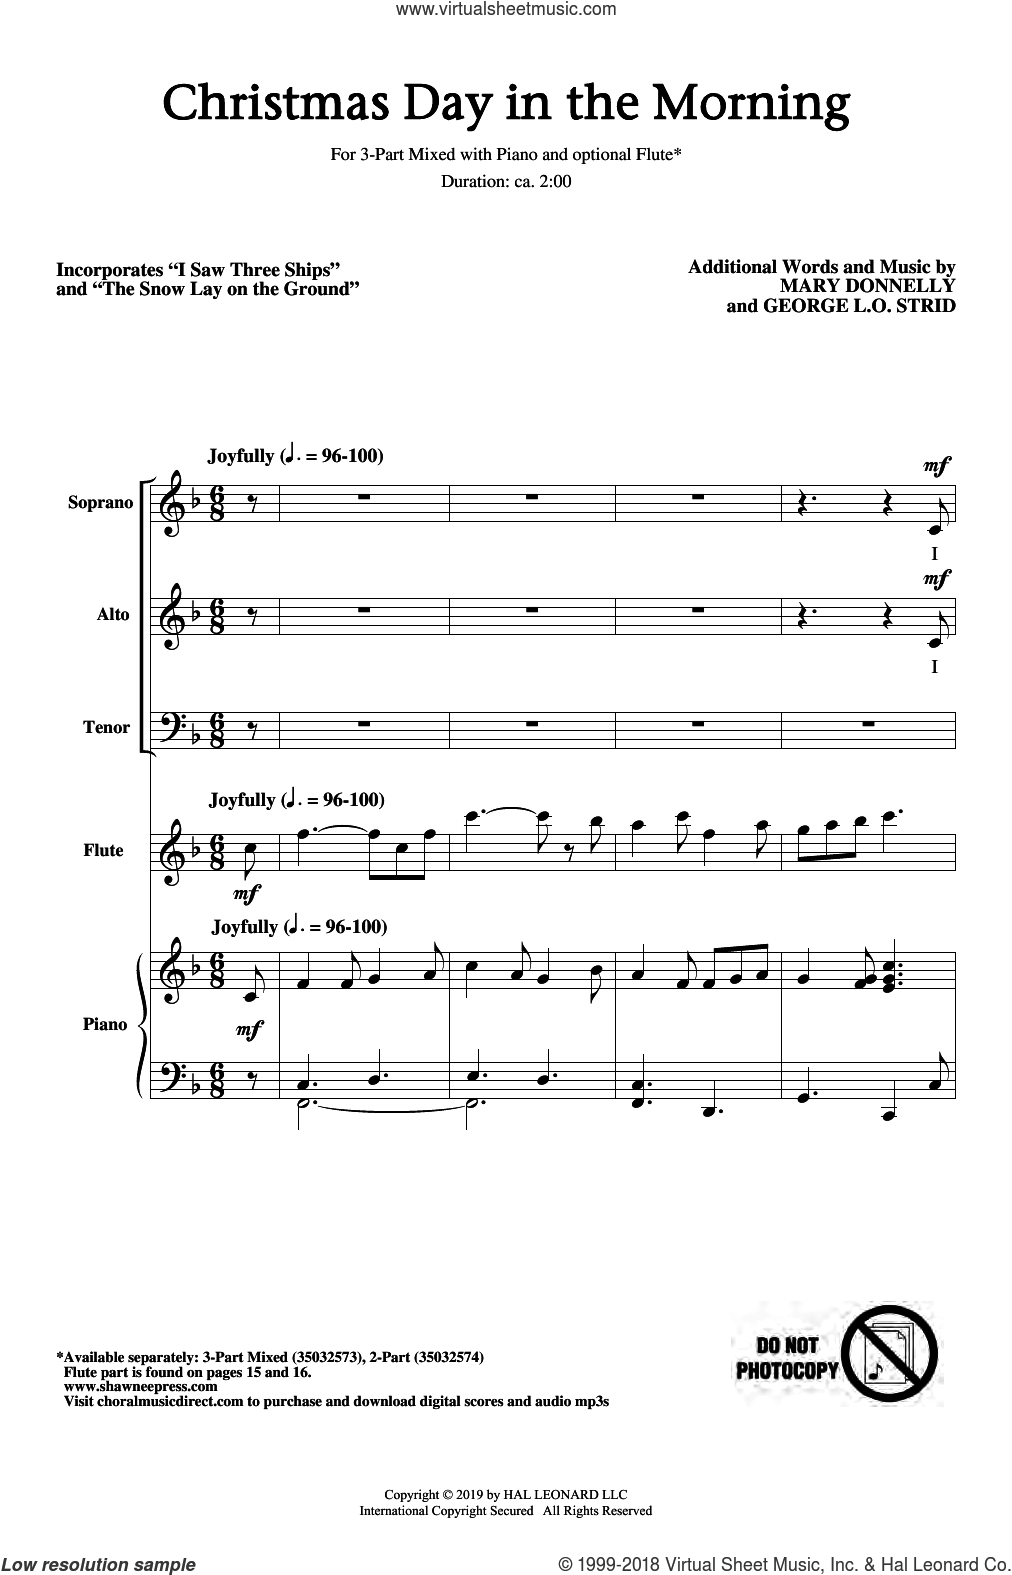 Christmas Day In The Morning sheet music for choir (3-Part Mixed) by Mary Donnelly and George L.O. Strid, intermediate skill level